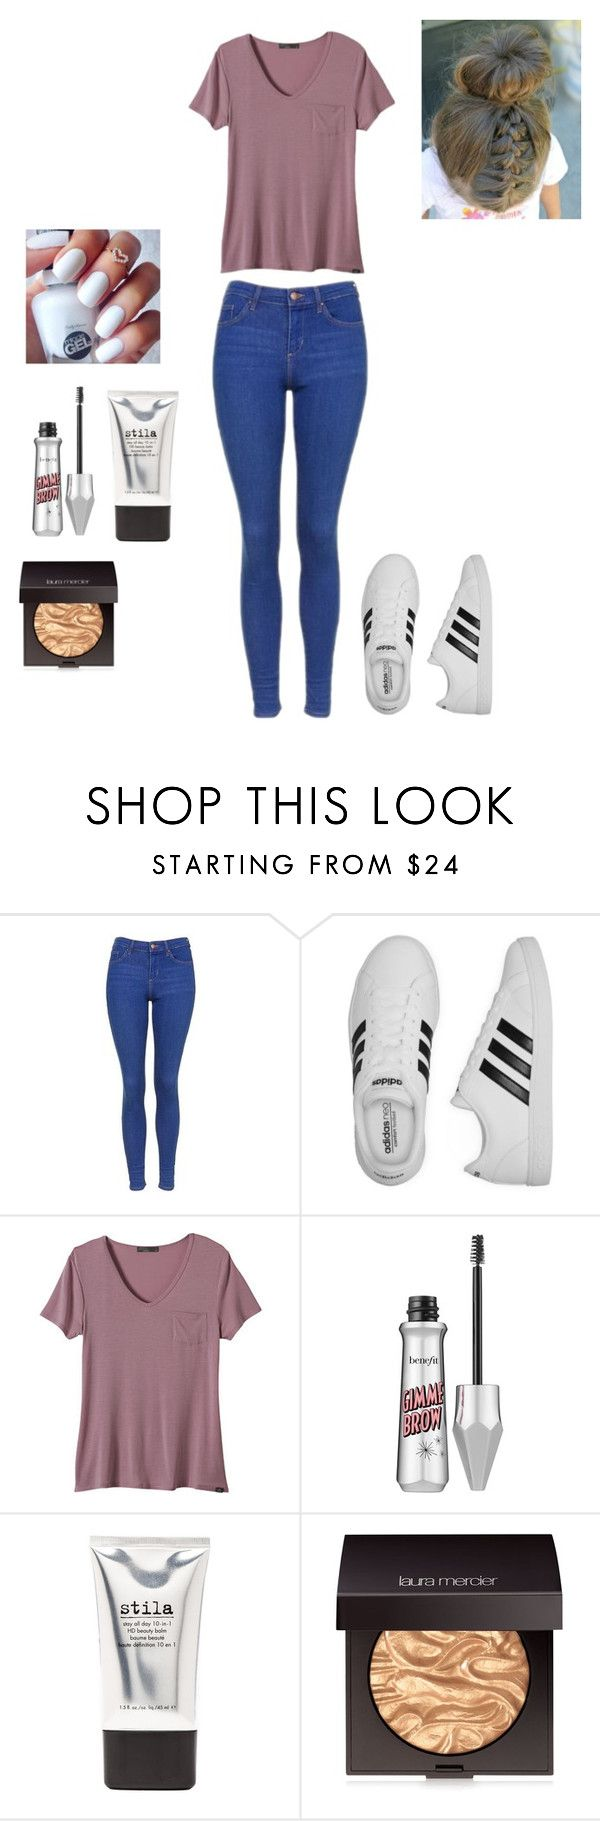 """""""How To Wear: Adidas Sneakers"""" by meredith-gomes on Polyvore featuring Topshop, adidas, prAna, Benefit, Stila and Laura Mercier"""